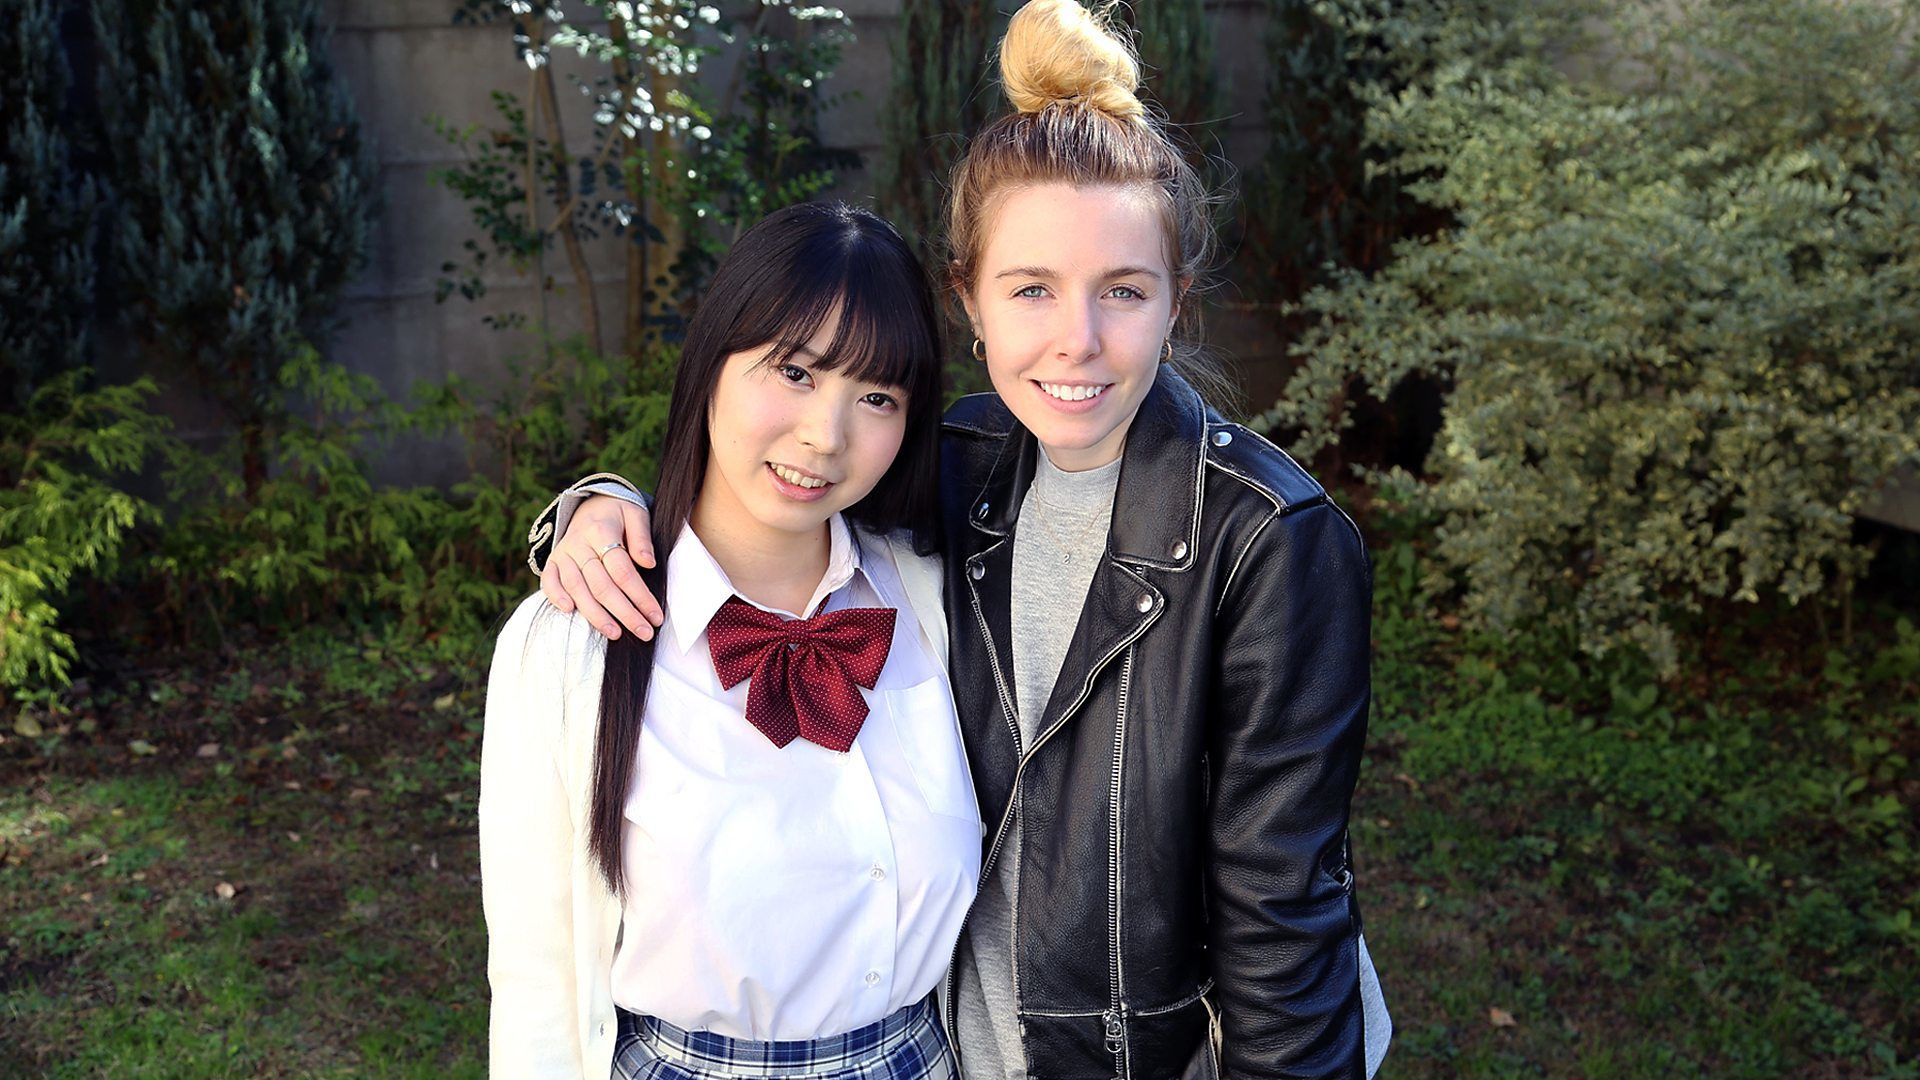 Stacey Dooley Investigates — s07 special-2 — Young Sex for Sale in Japan